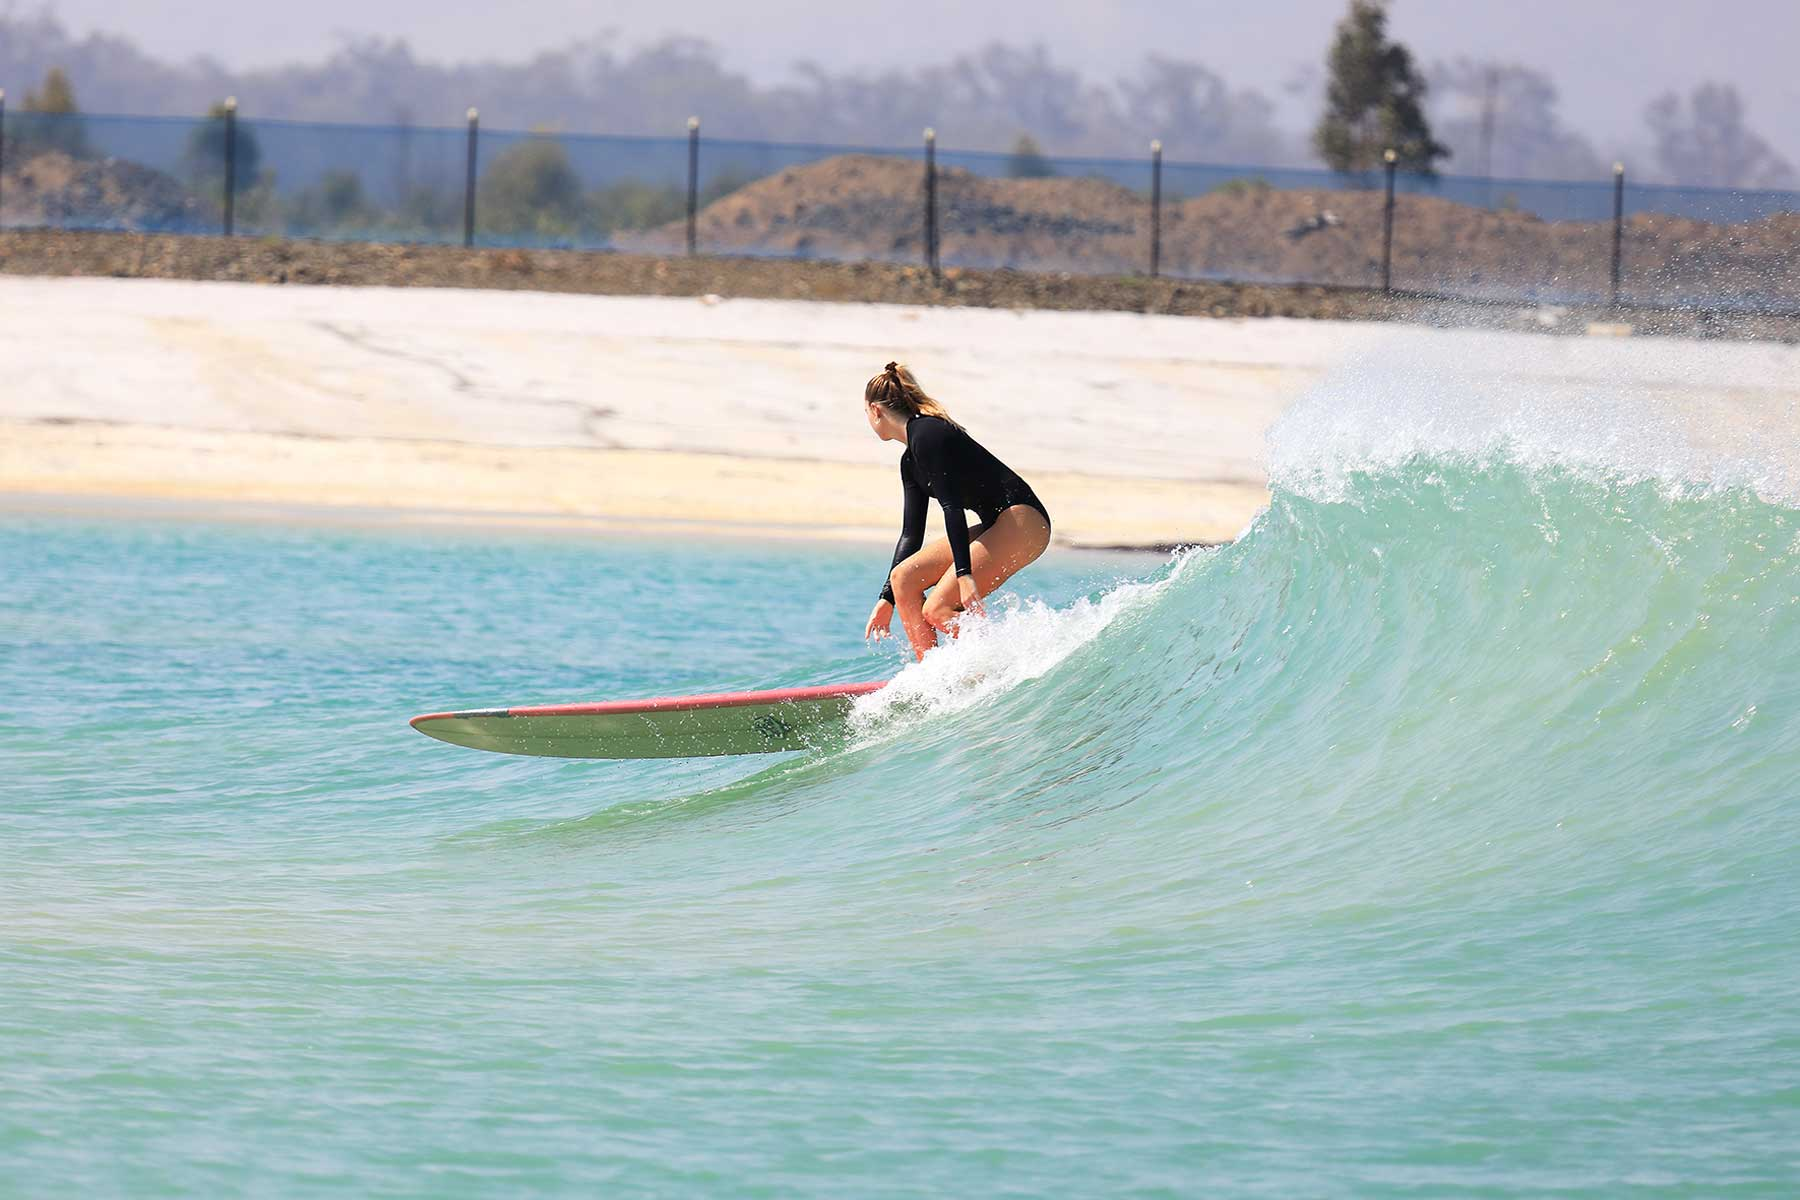 Surf Lakes in Australia, a large wave pool for surfing